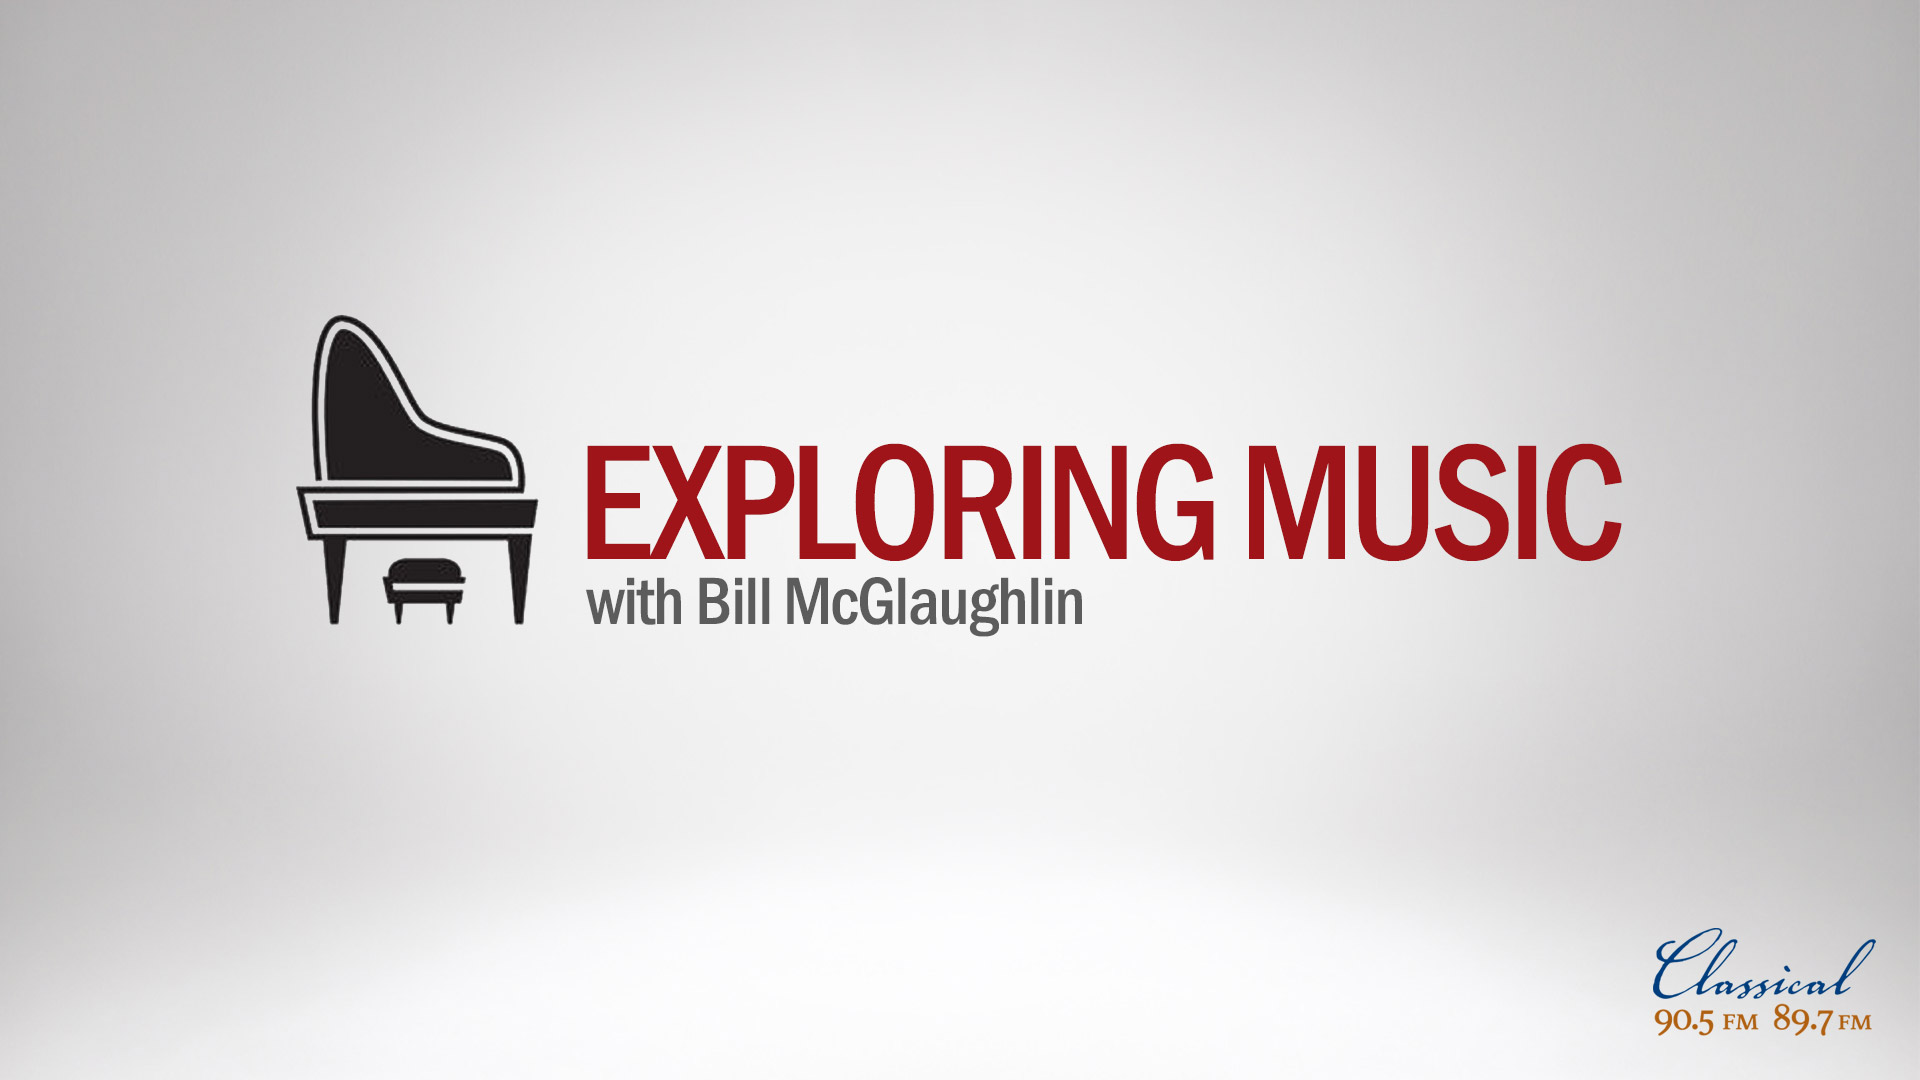 Exploring Music airs weekdays at 7 p.m. on Classical 90.5.